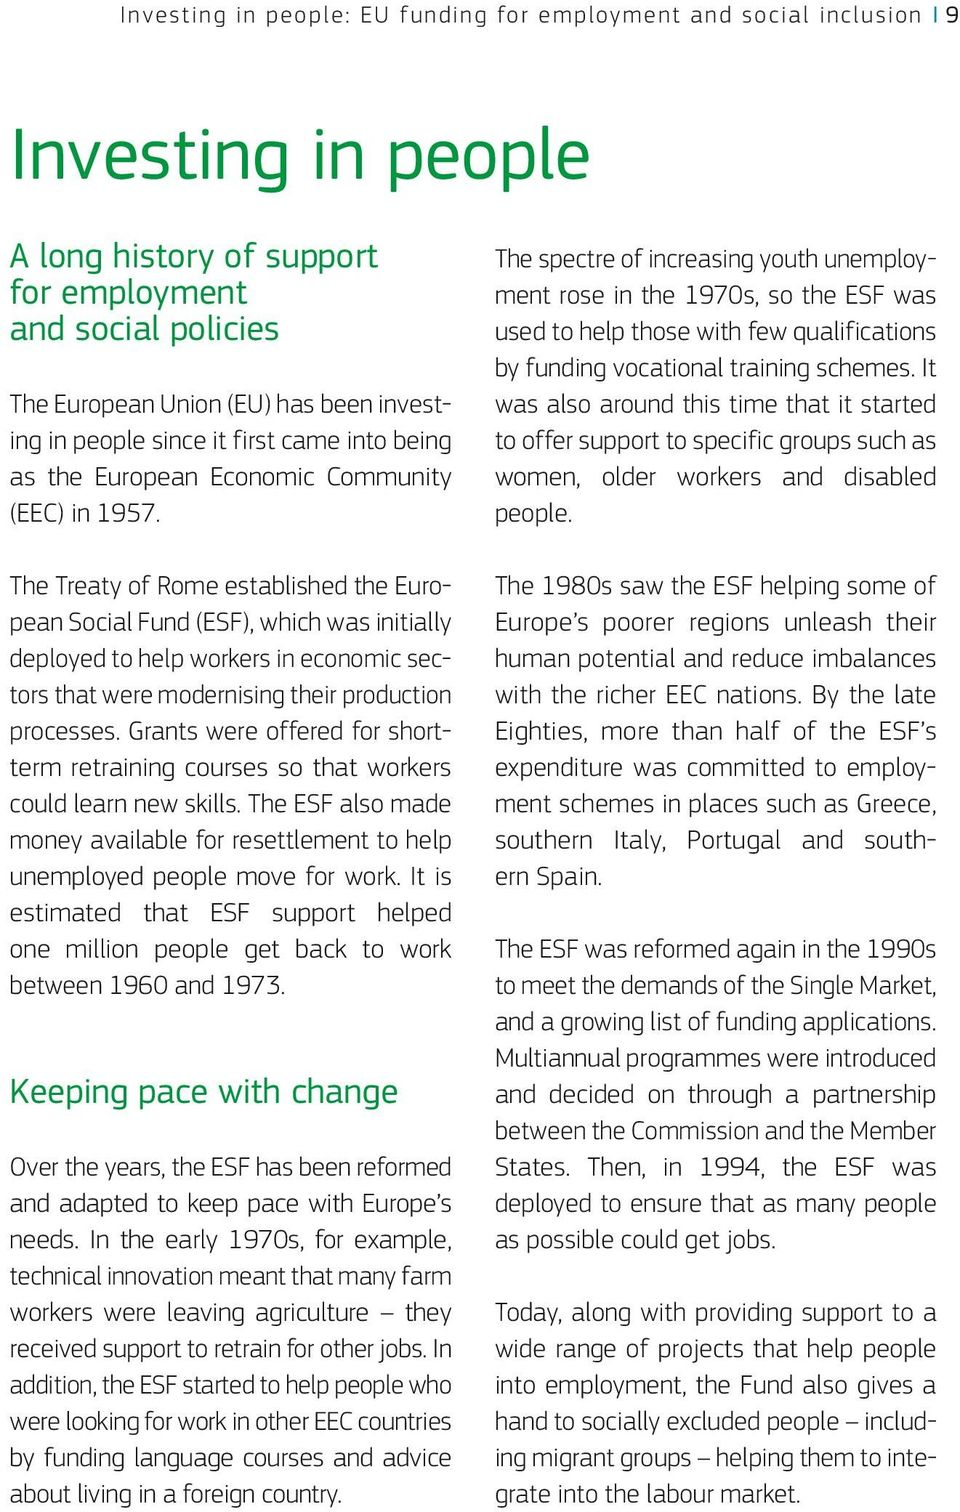 The Treaty of Rome established the European Social Fund (ESF), which was initially deployed to help workers in economic sectors that were modernising their production processes.